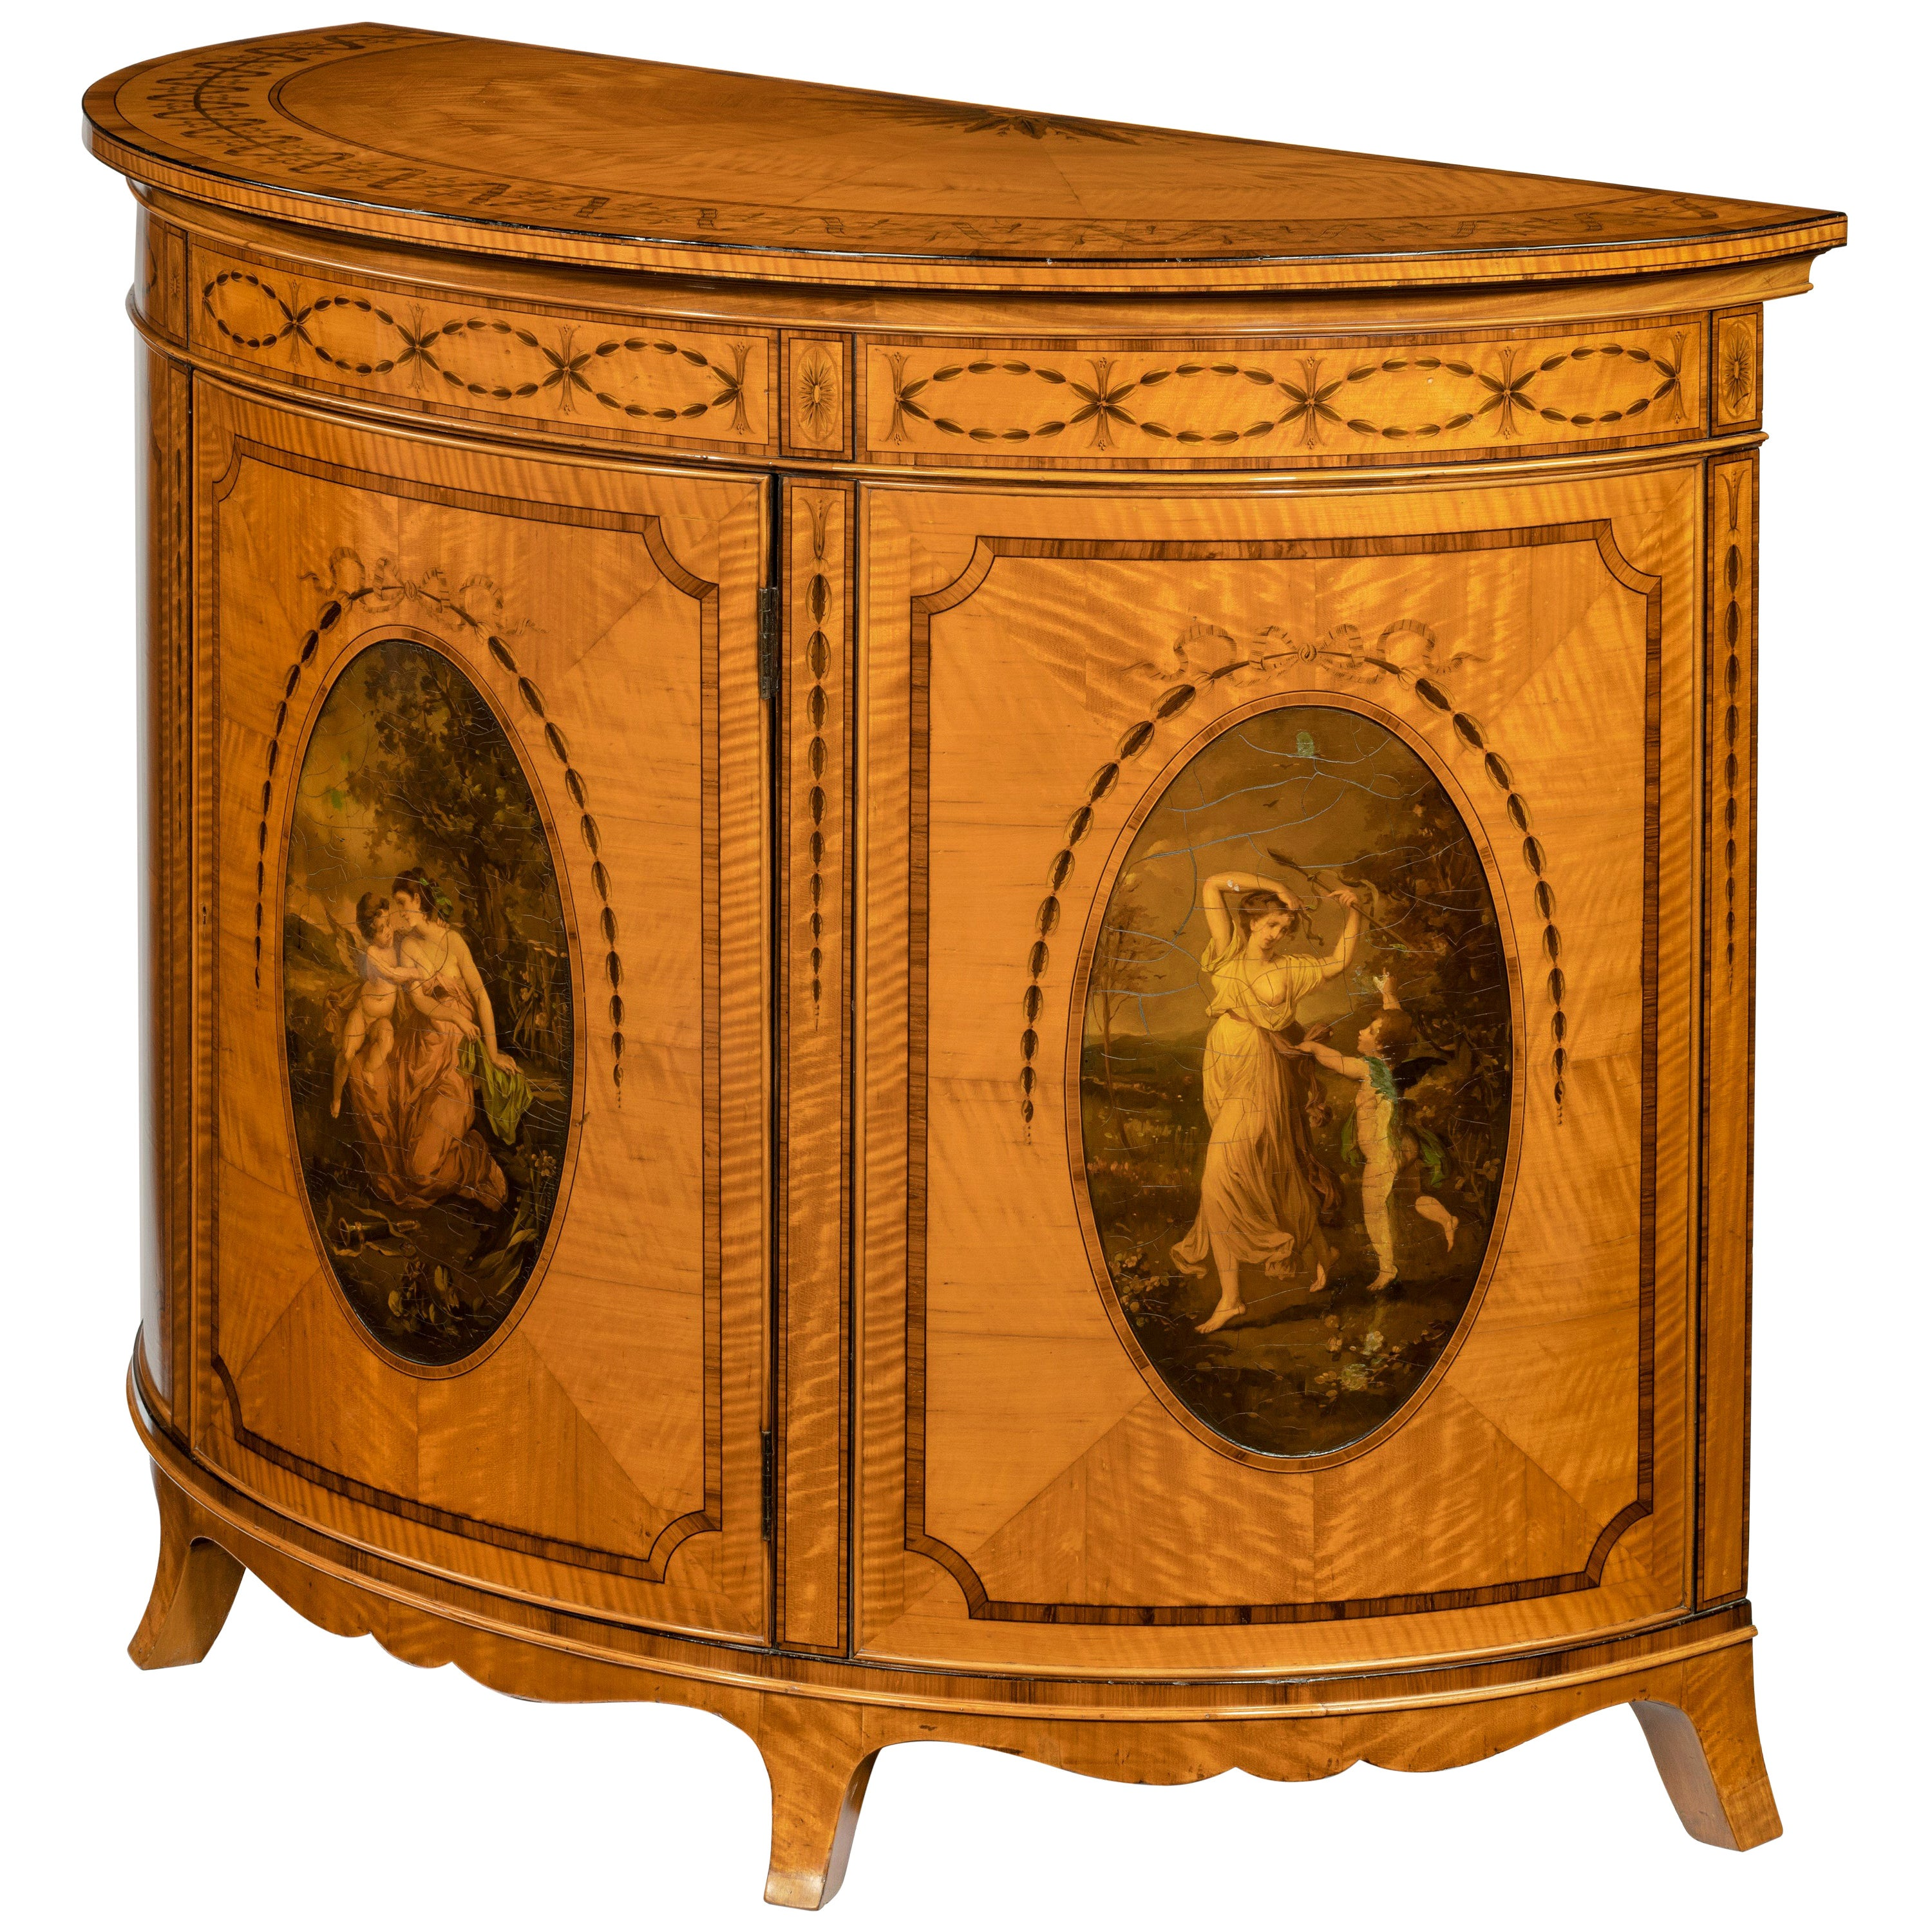 Fine Victorian Sheraton Revival West Indian Satinwood Demilune Commode